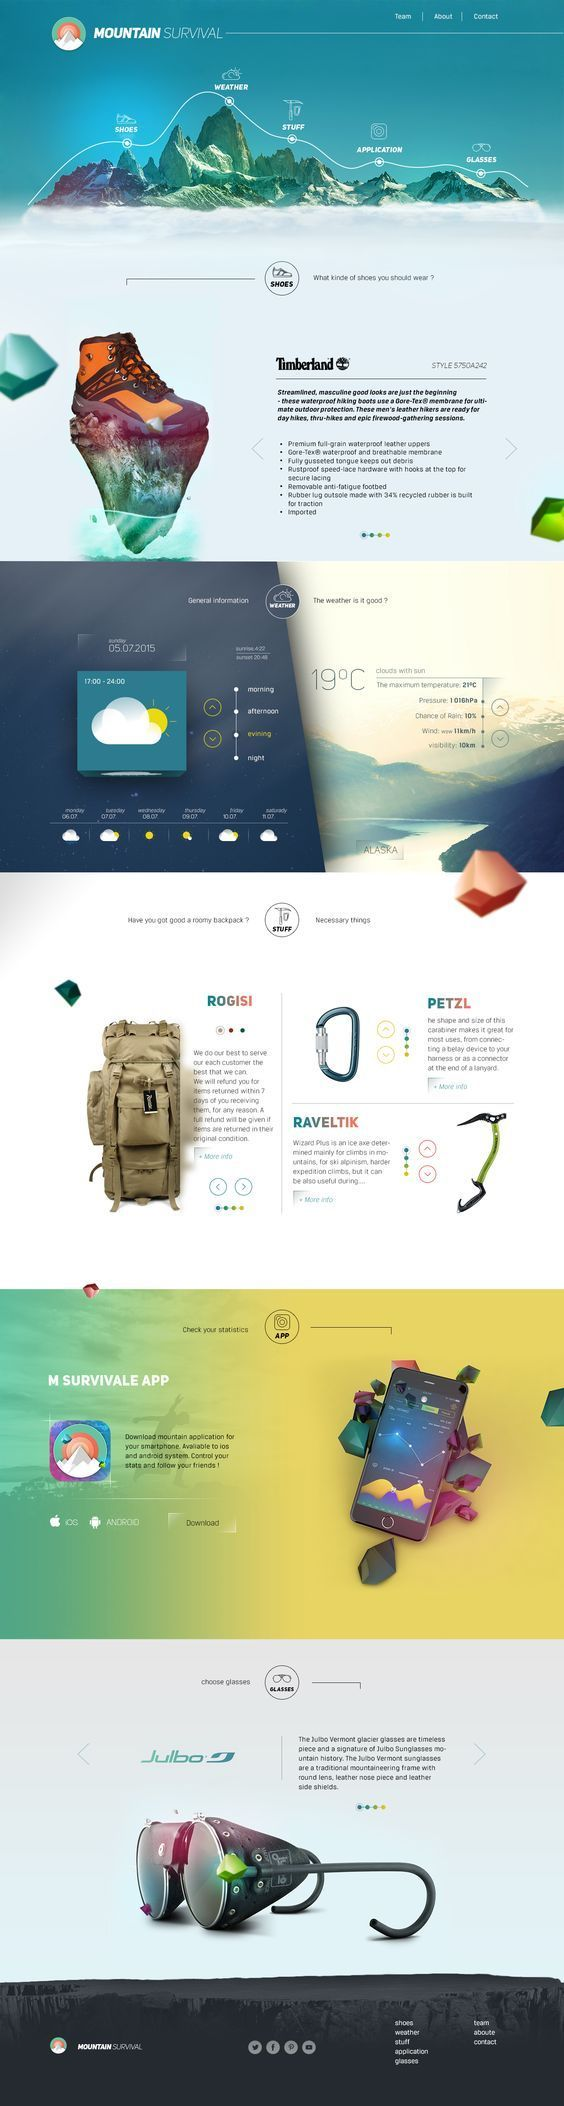 Best Web Designs for Inspiration!. If you like UX, design, or design thinking, check out theuxblog.com